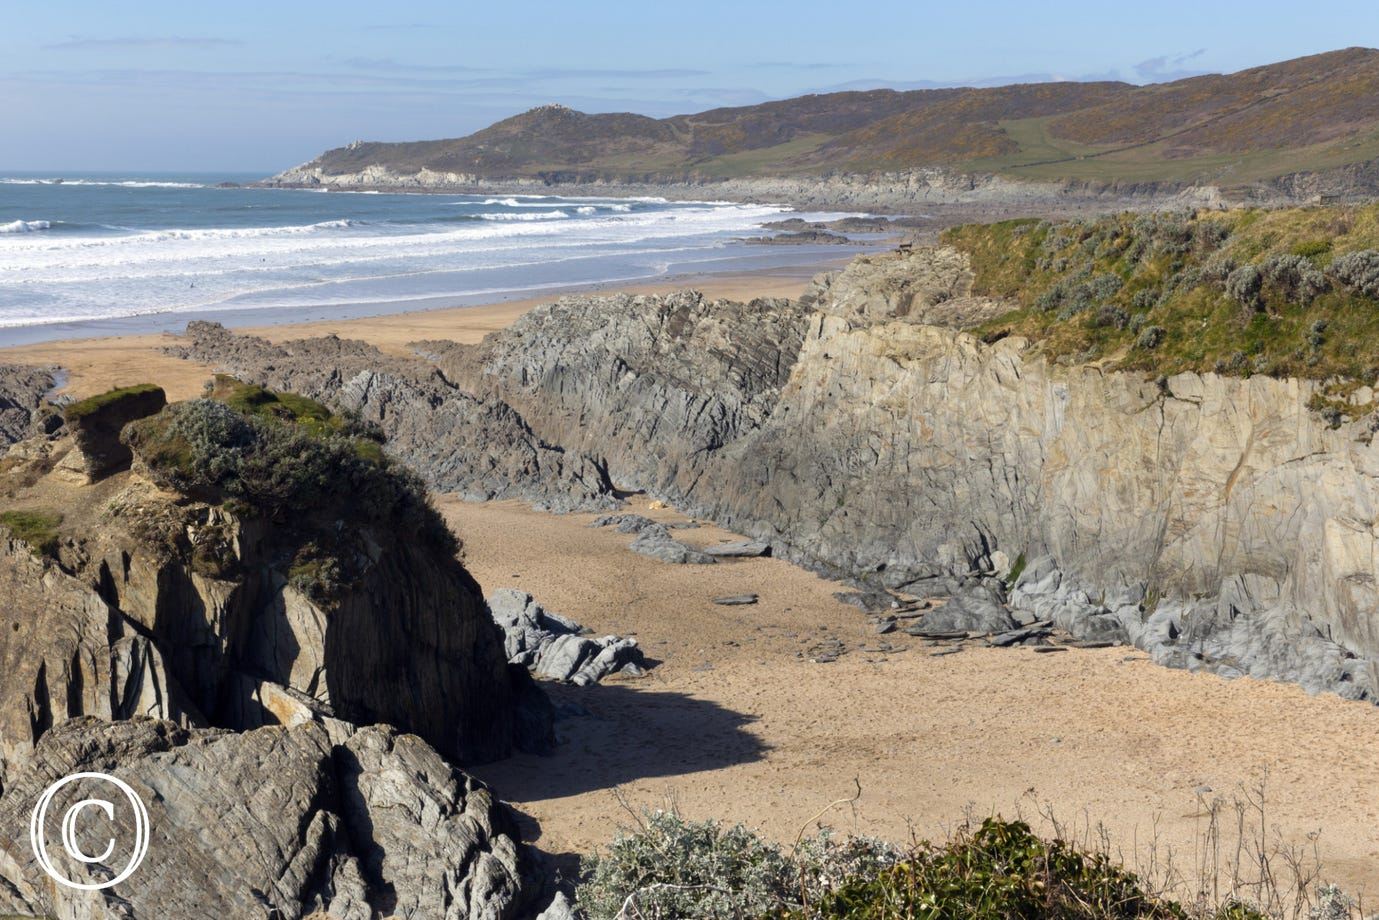 Barricane is Woolacombes second beach which is a beautiful sheltered cove